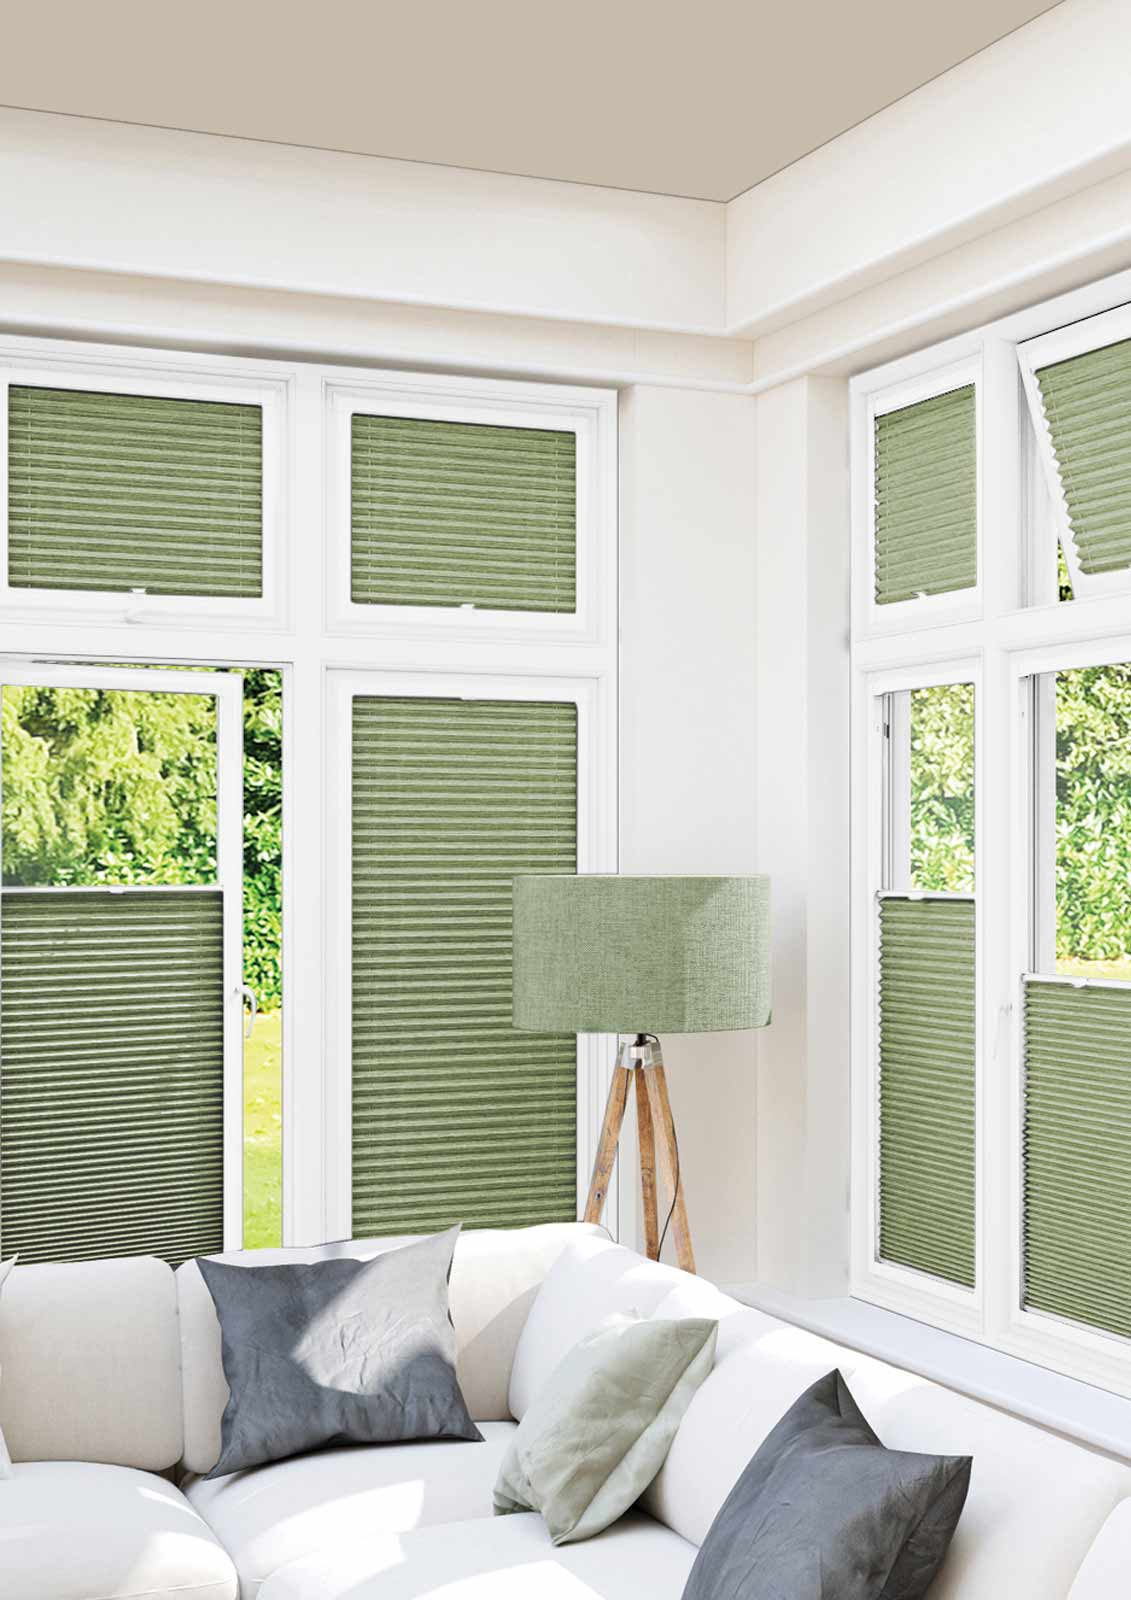 Honeycomb Blinds -  DARBY PISTACHIO